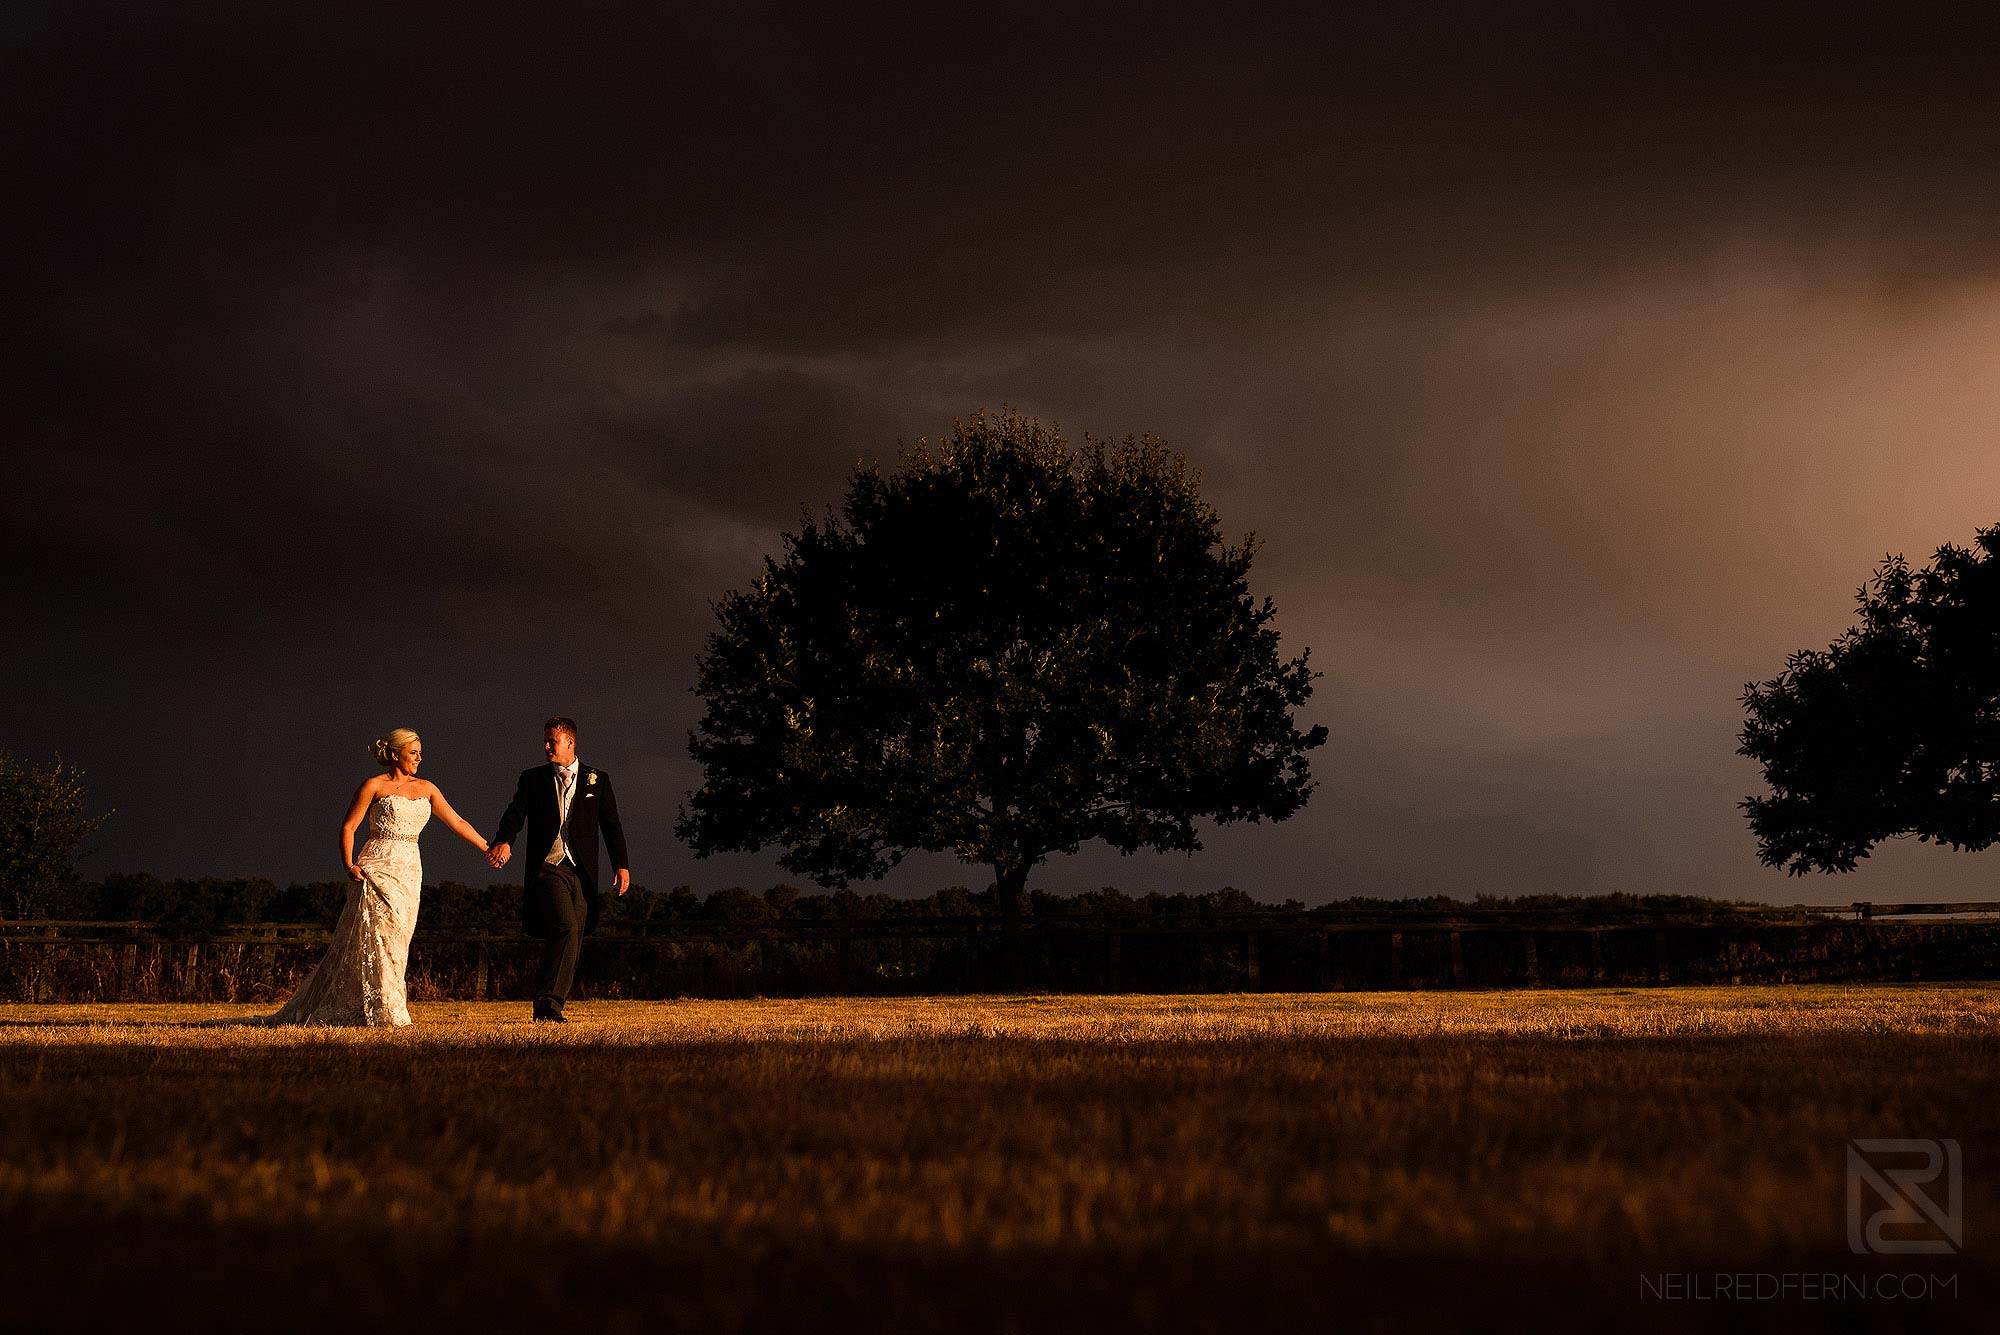 bride and groom walking through countryside at sunset